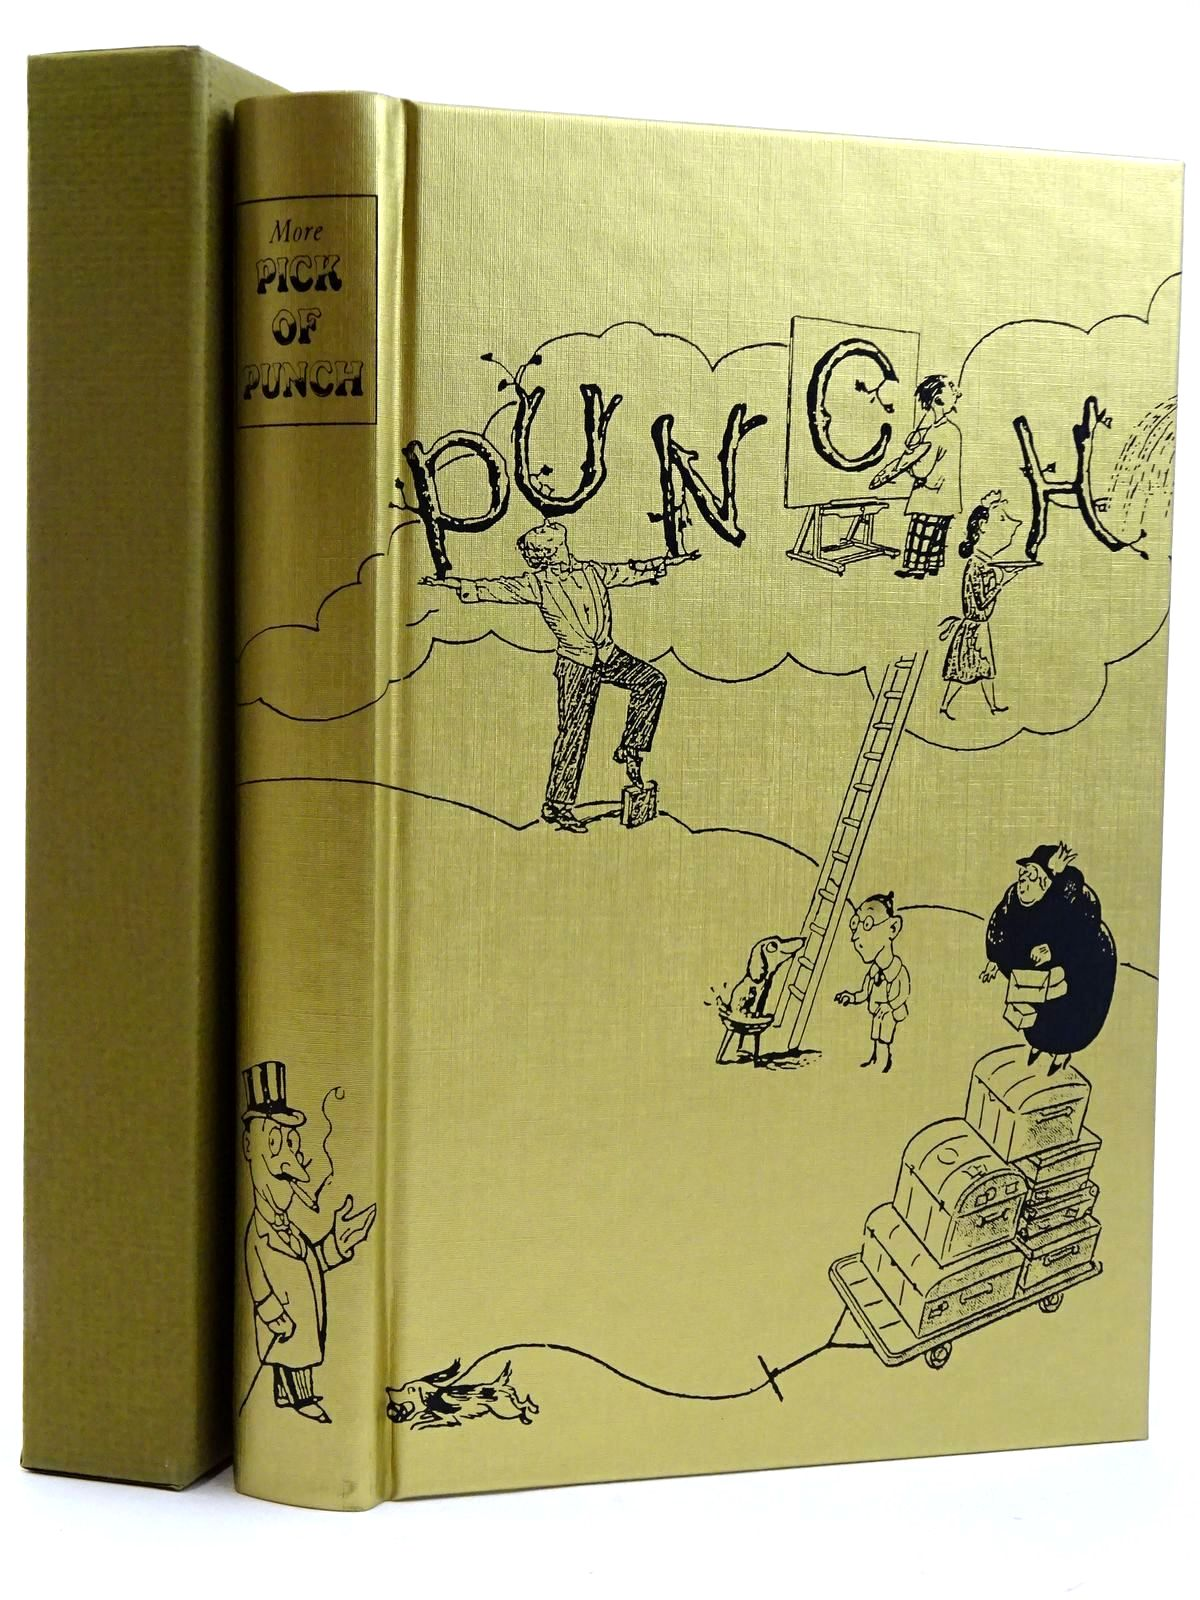 Photo of MORE PICK OF PUNCH written by Doran, Amanda-Jane published by Folio Society (STOCK CODE: 2131726)  for sale by Stella & Rose's Books